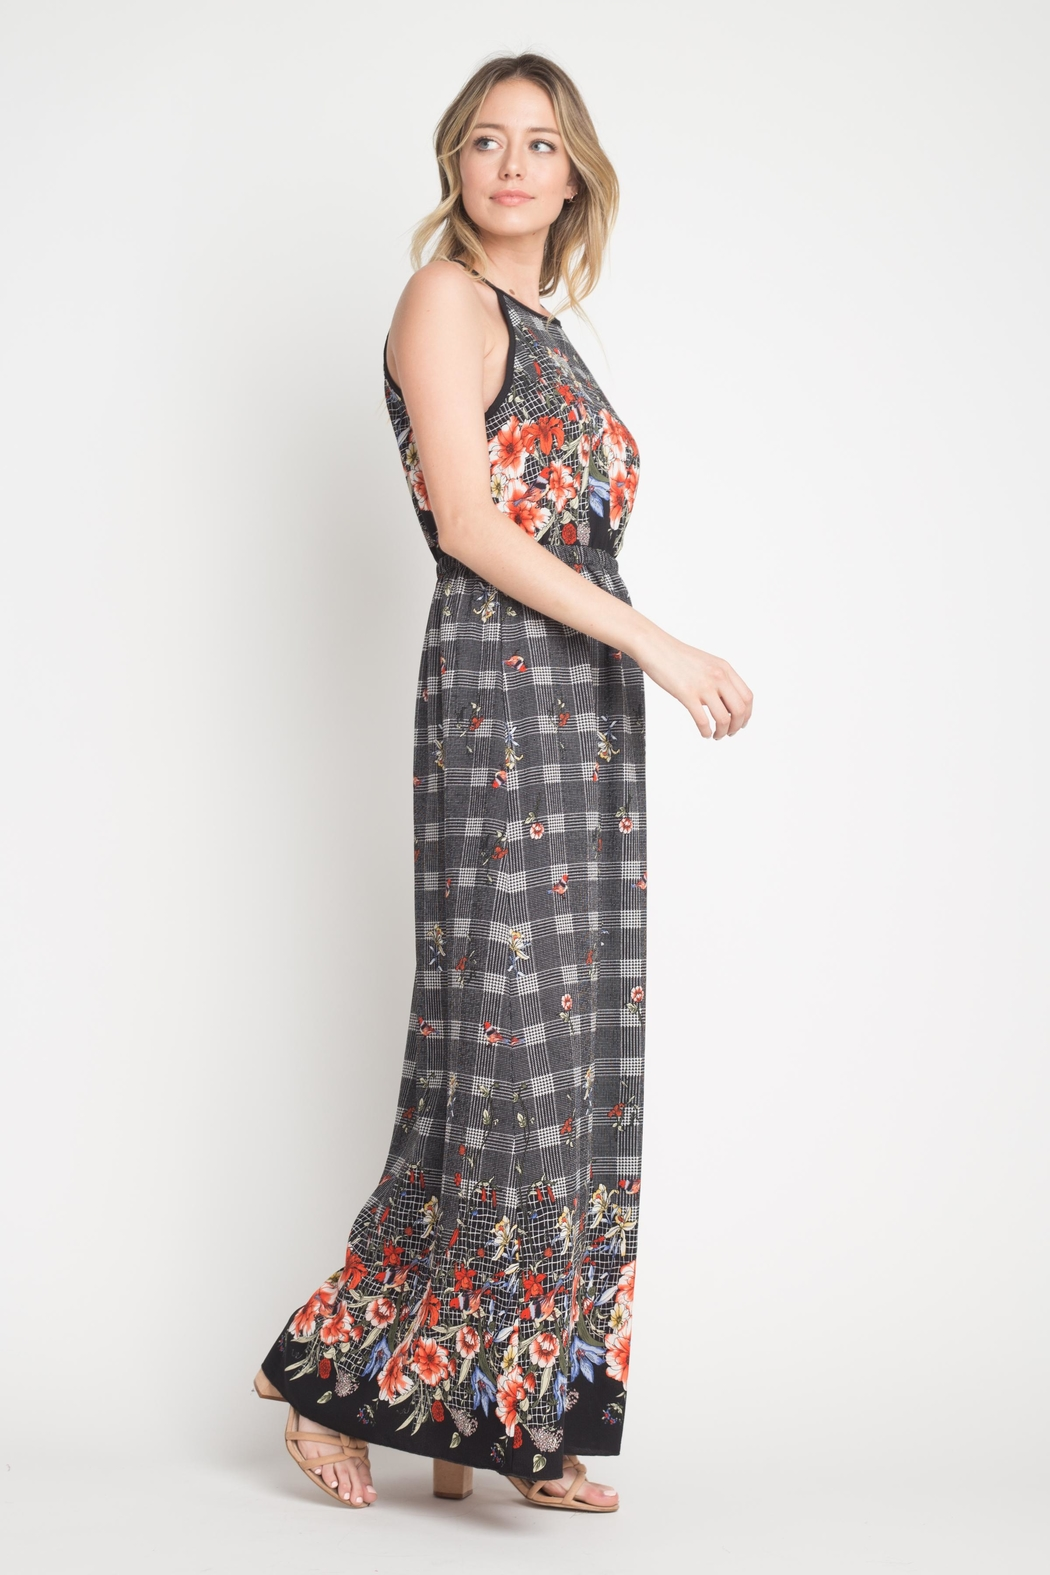 Miley and Molly Bubble Crepe Floral Plaid Print Hi Neck Maxi Dress - Front Full Image